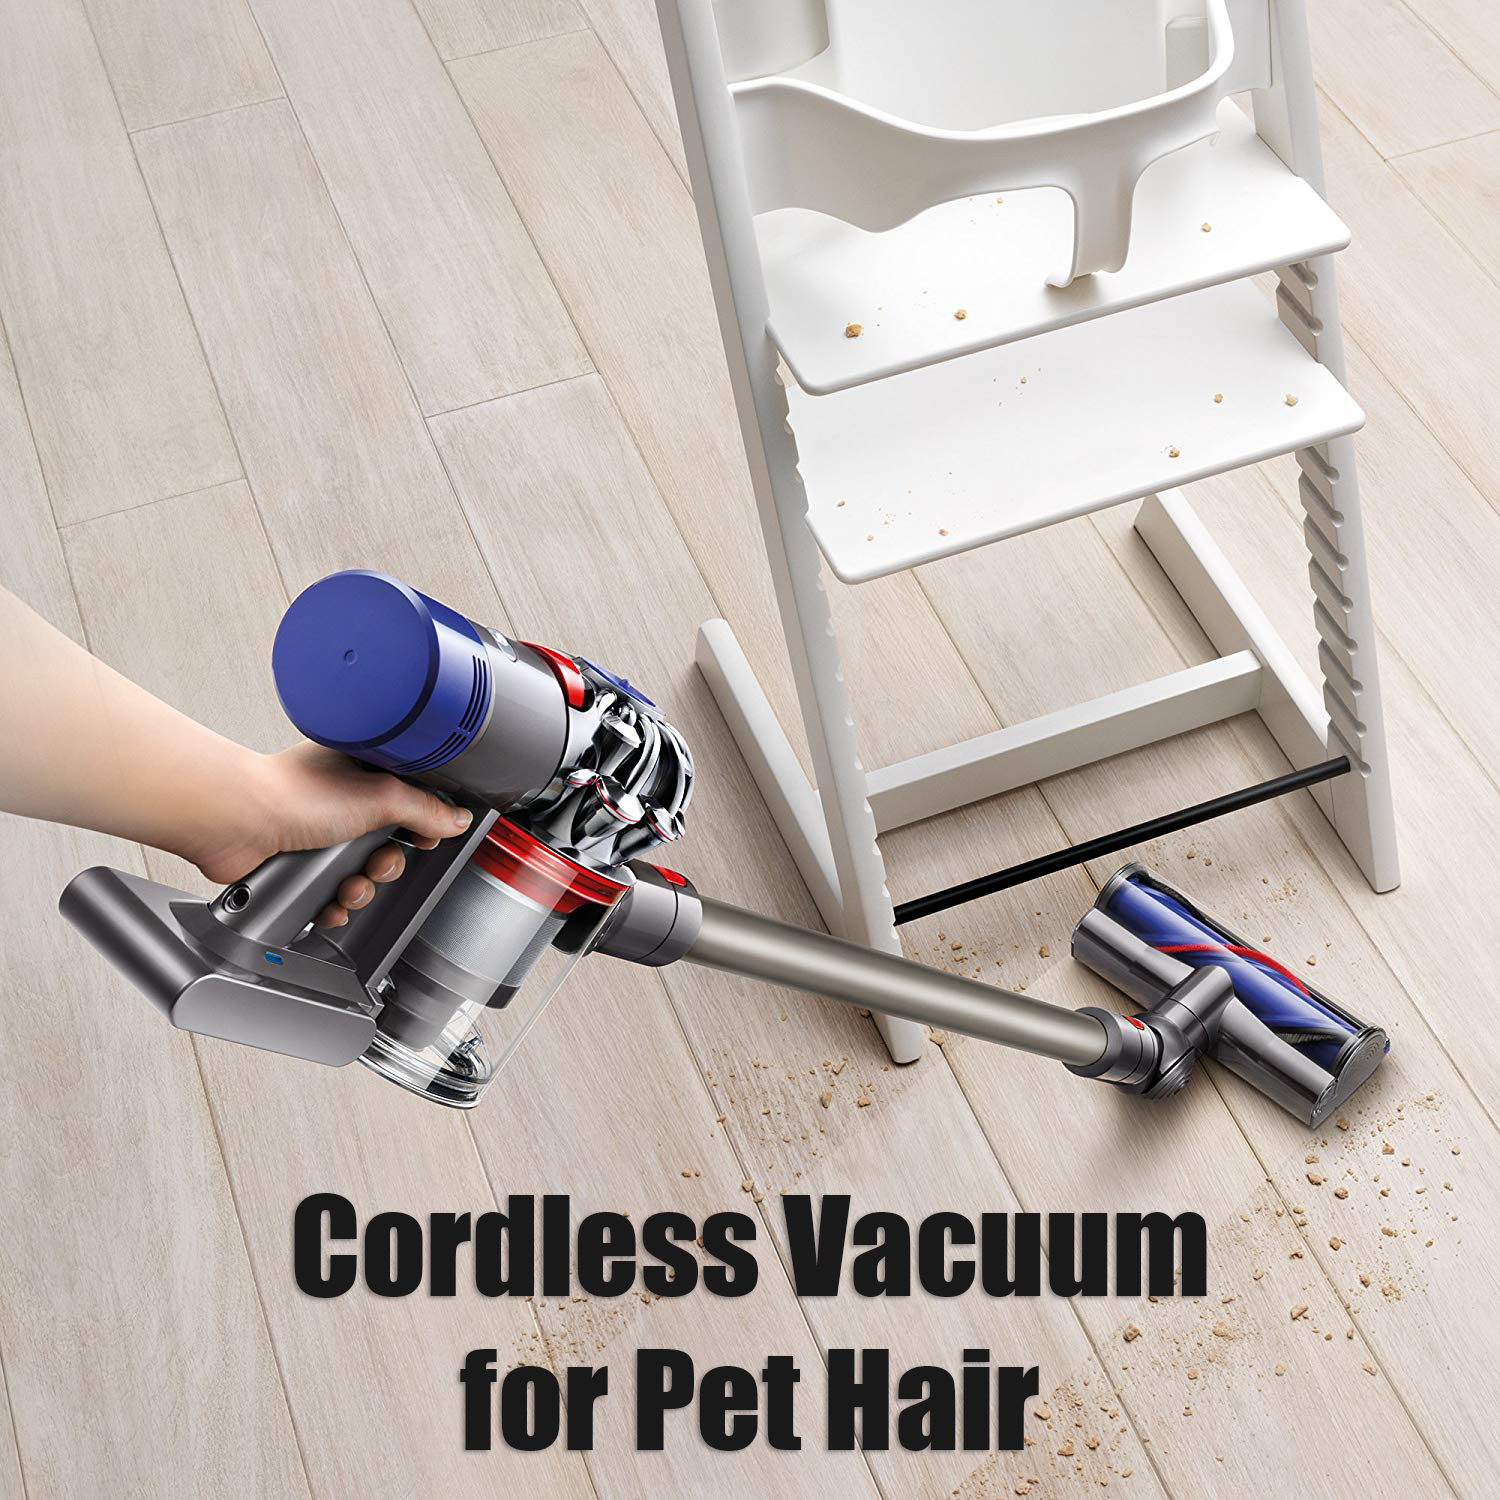 Best Vacuum For Pet Hair 2020.4 Best Cordless Vacuum For Pet Hair Updated 2020 Buyer S Guide